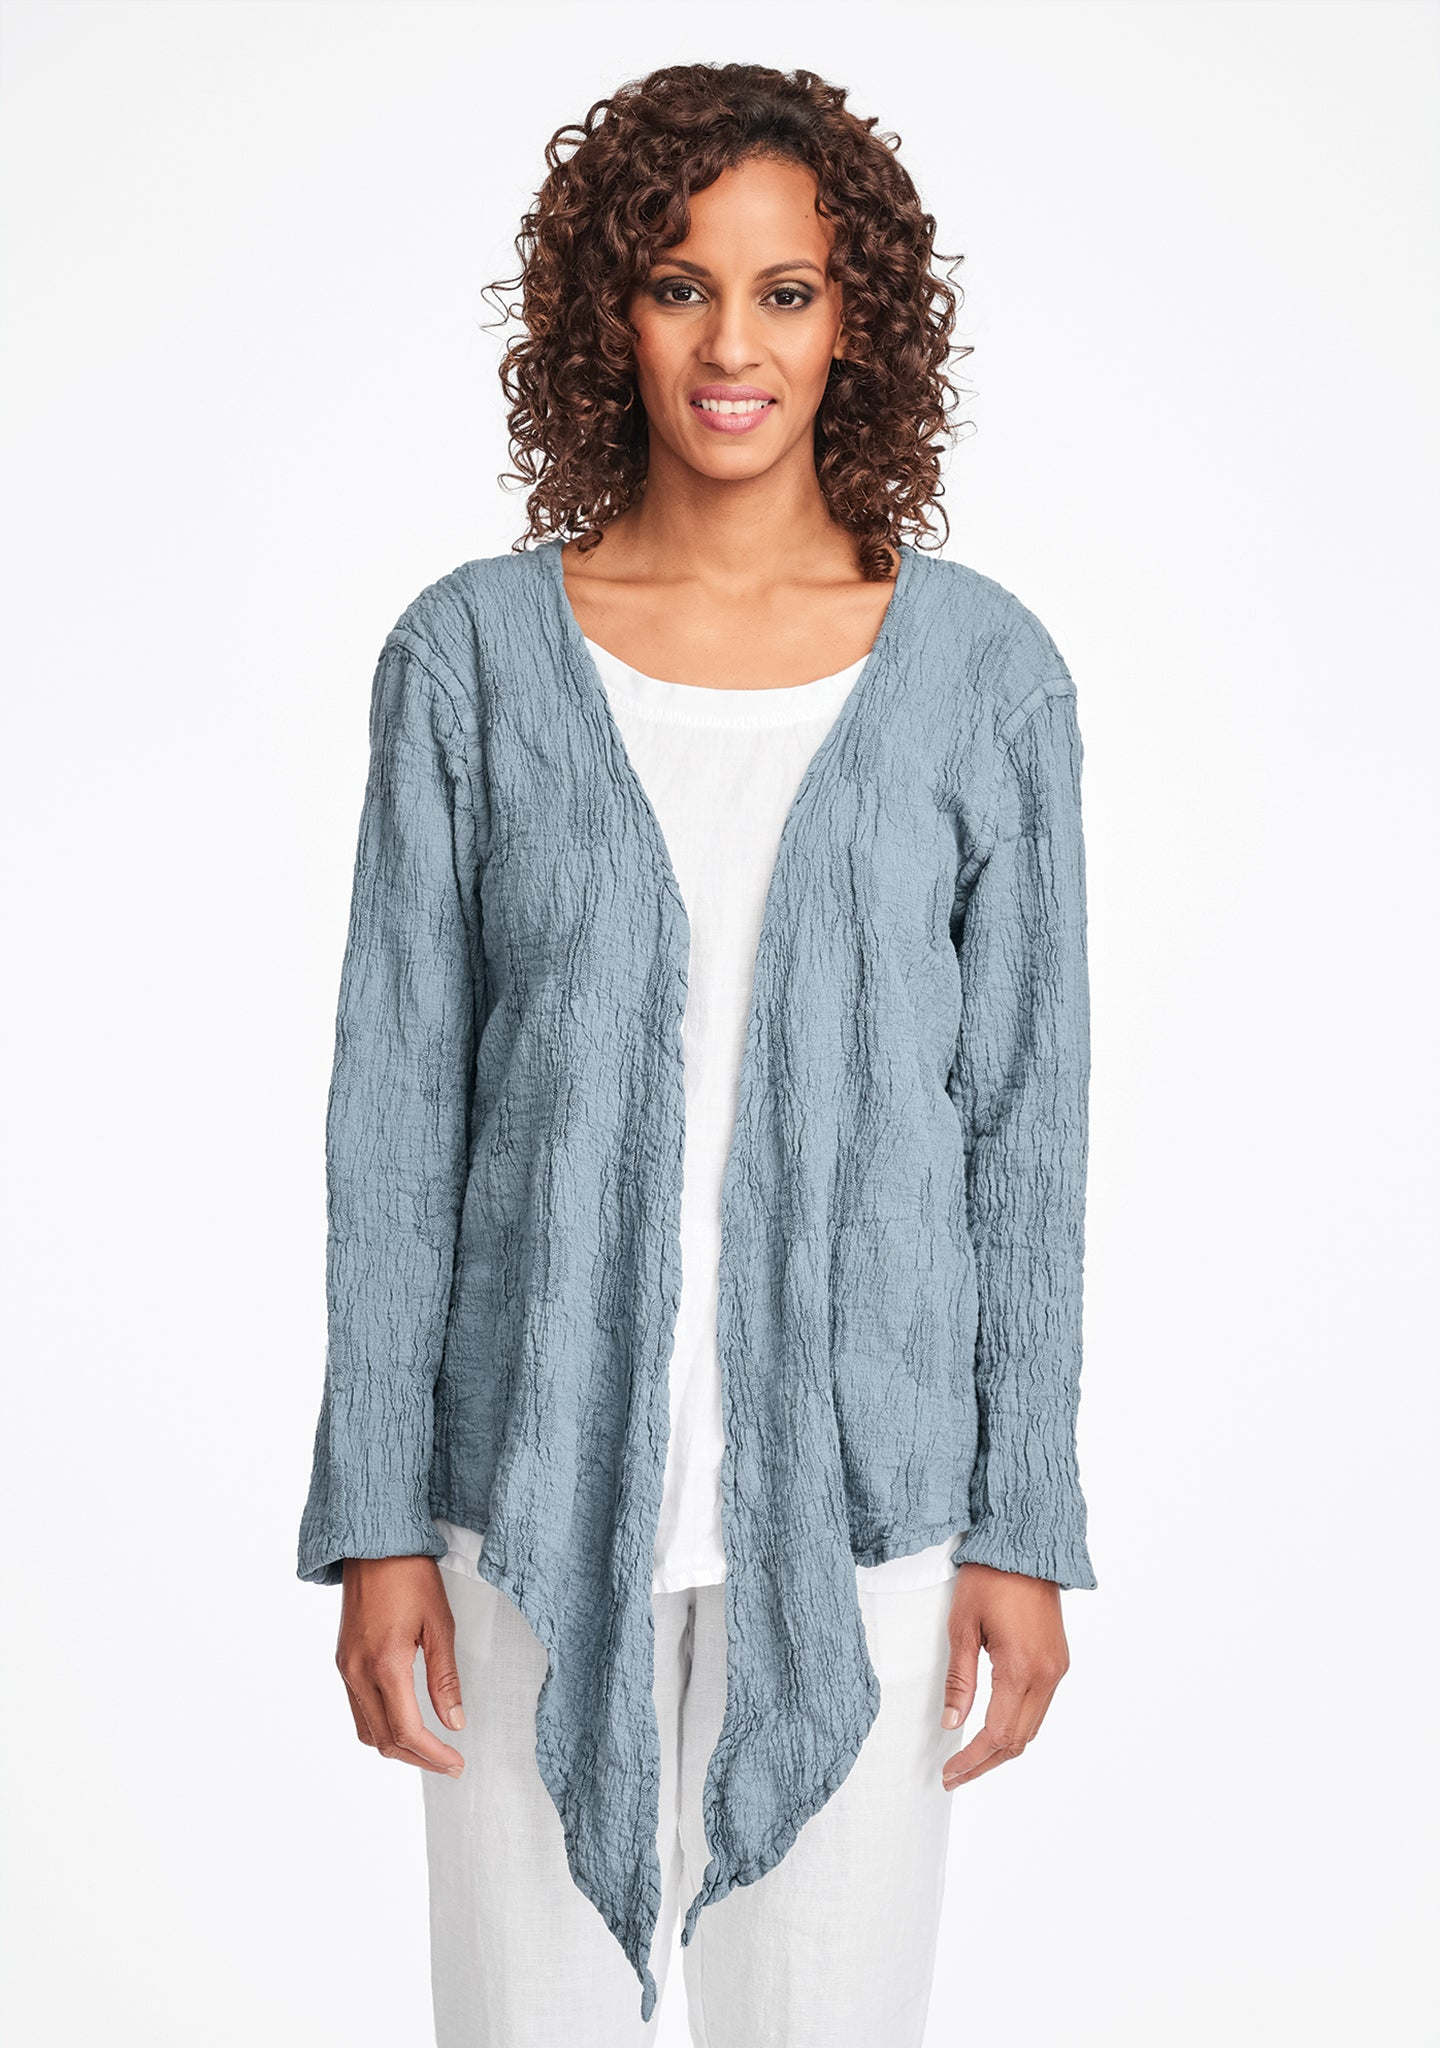 urban shrug linen cardigan blue